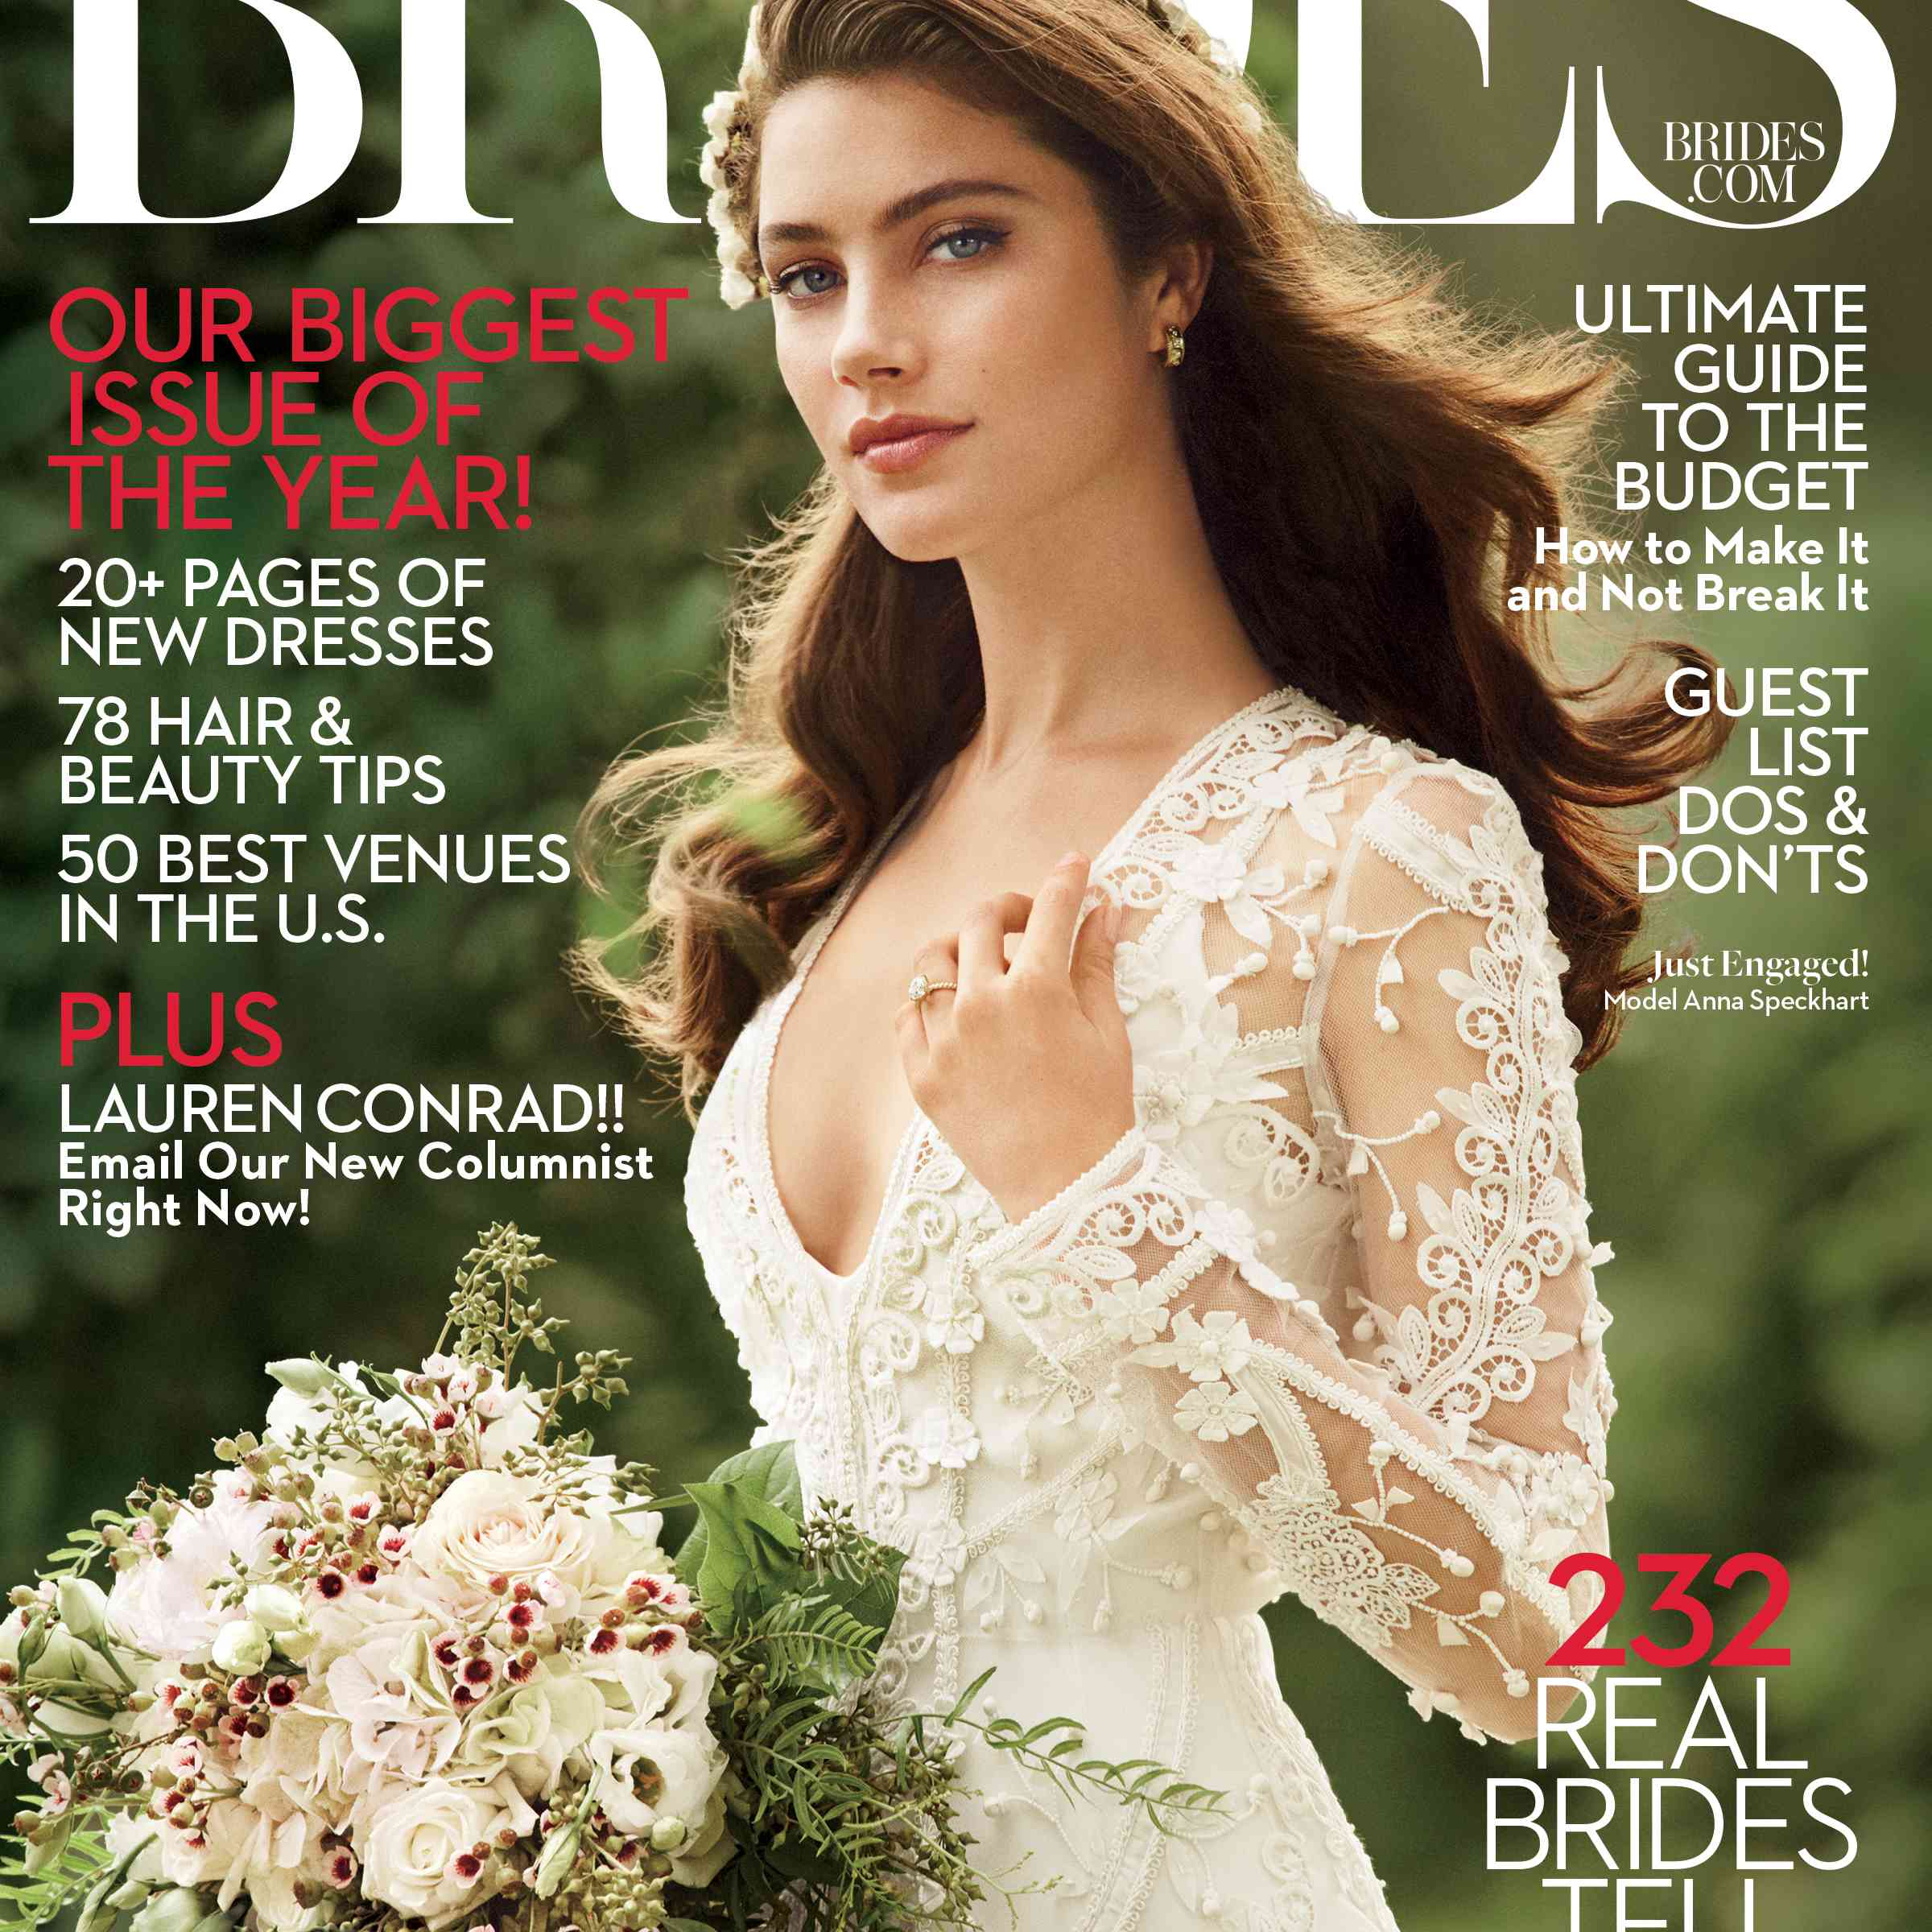 BRIDES February March 2017 Cover Image